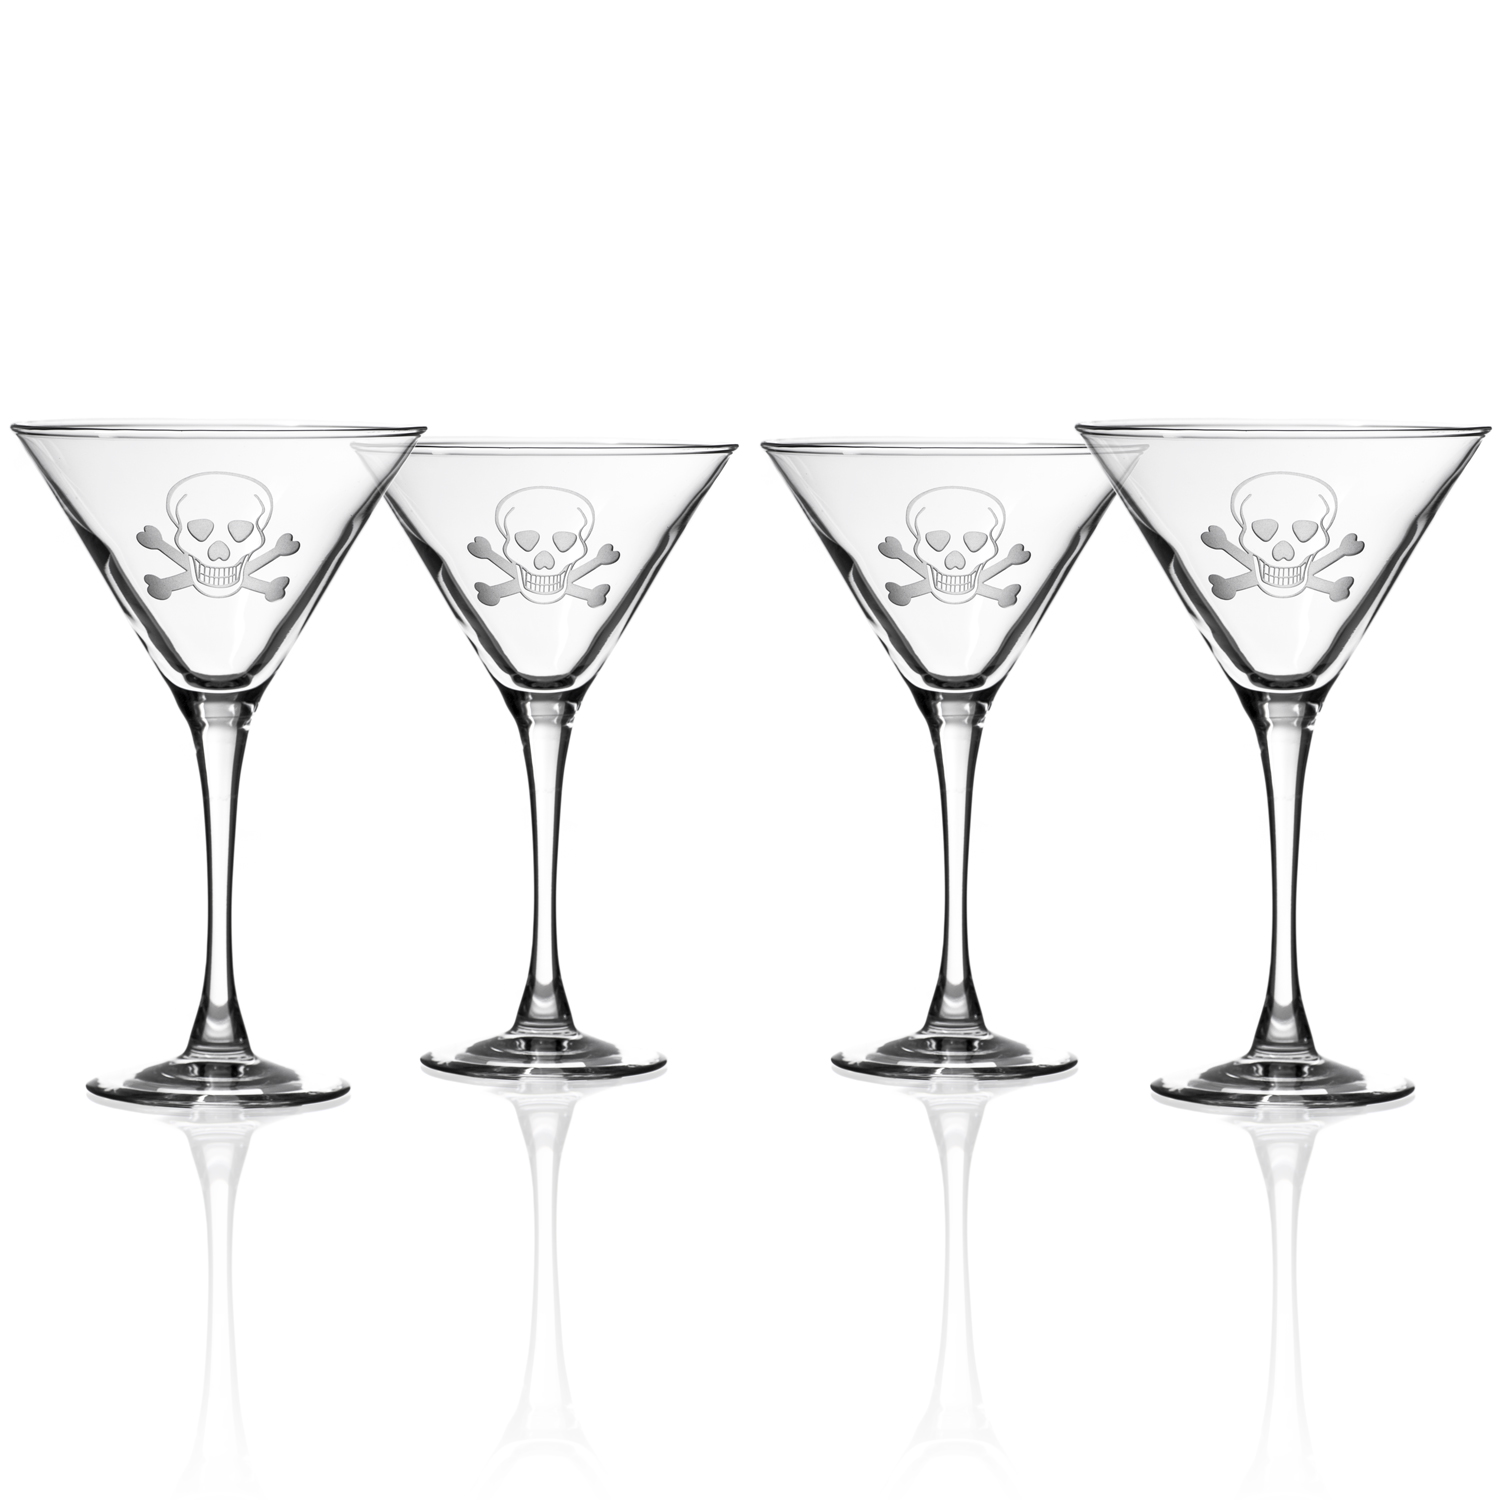 Skull and Cross Bones Martini Glasses